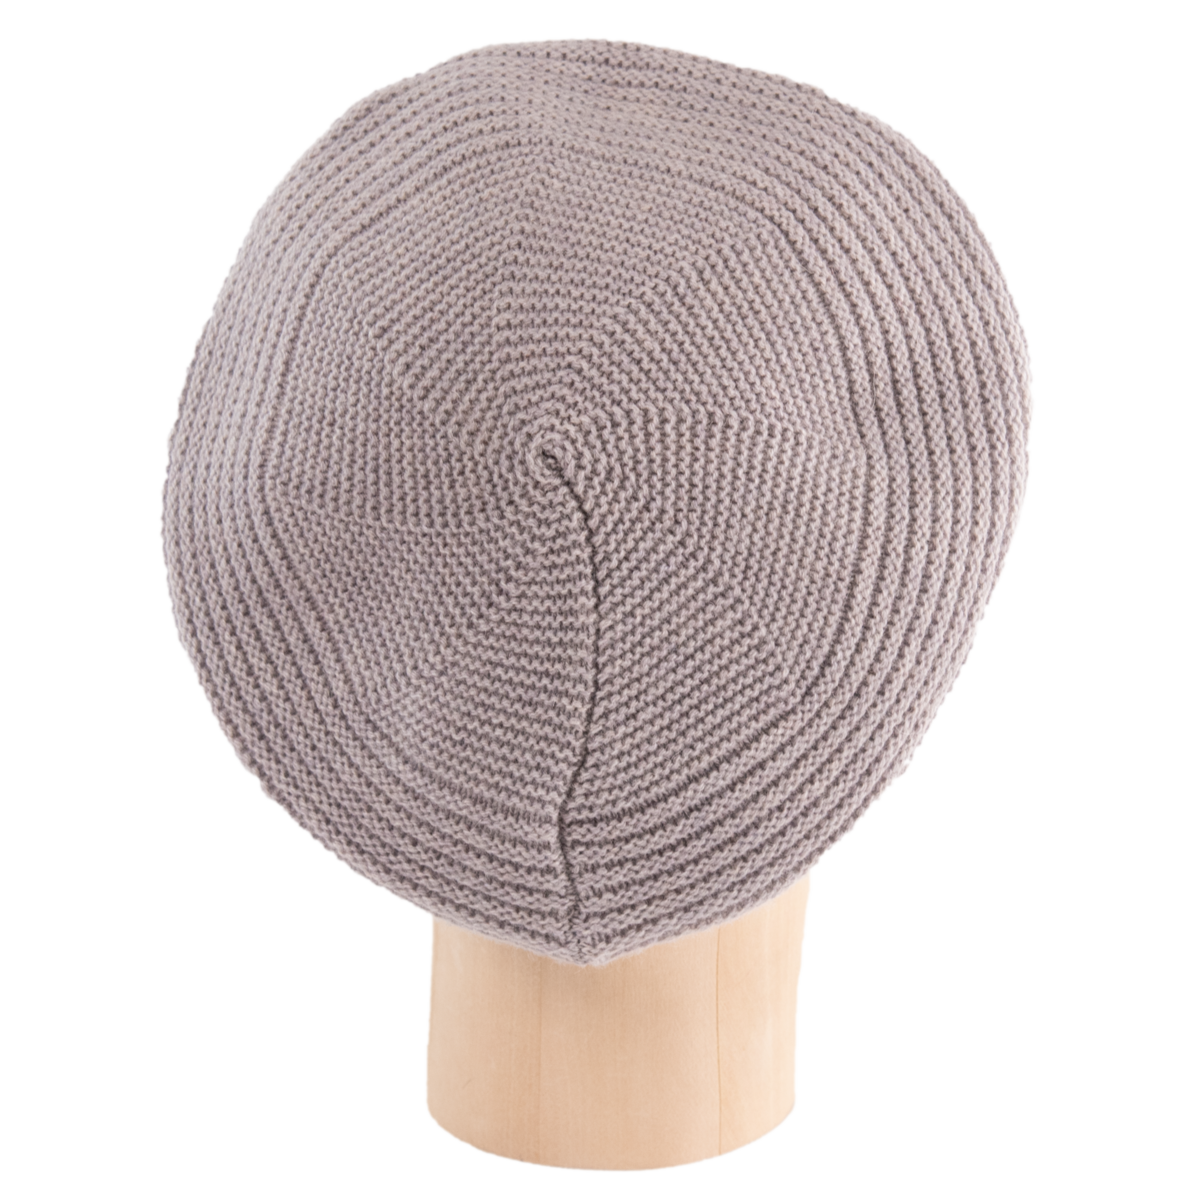 Horizontal Knit Beanie - TAUPE - product images  of